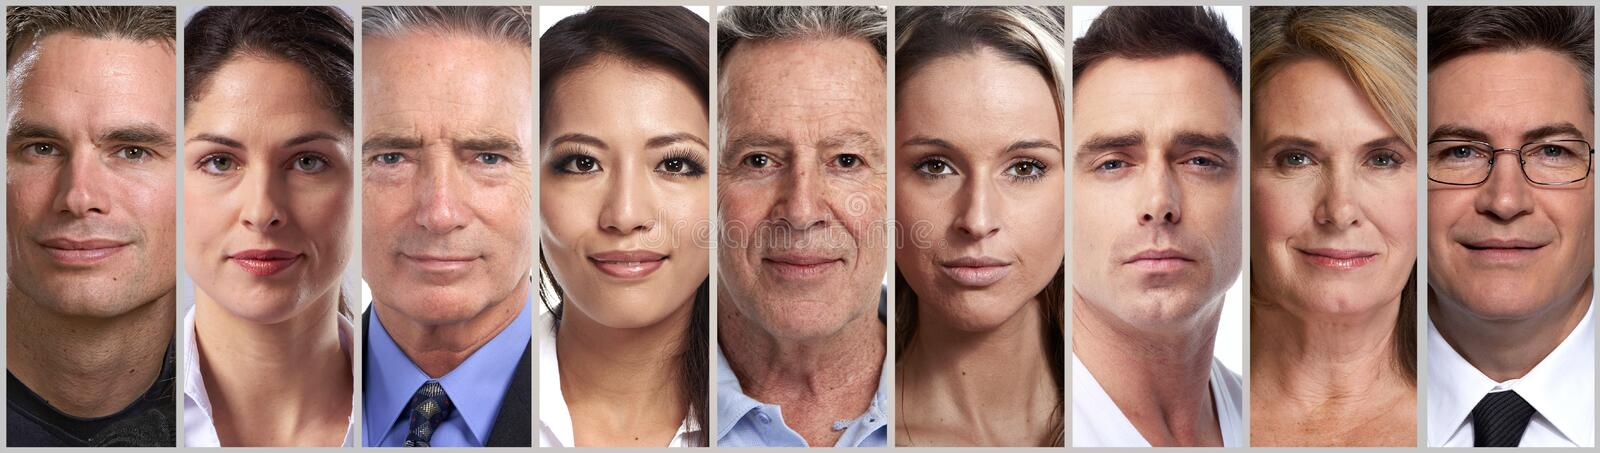 Visages calmes de personnes photos stock